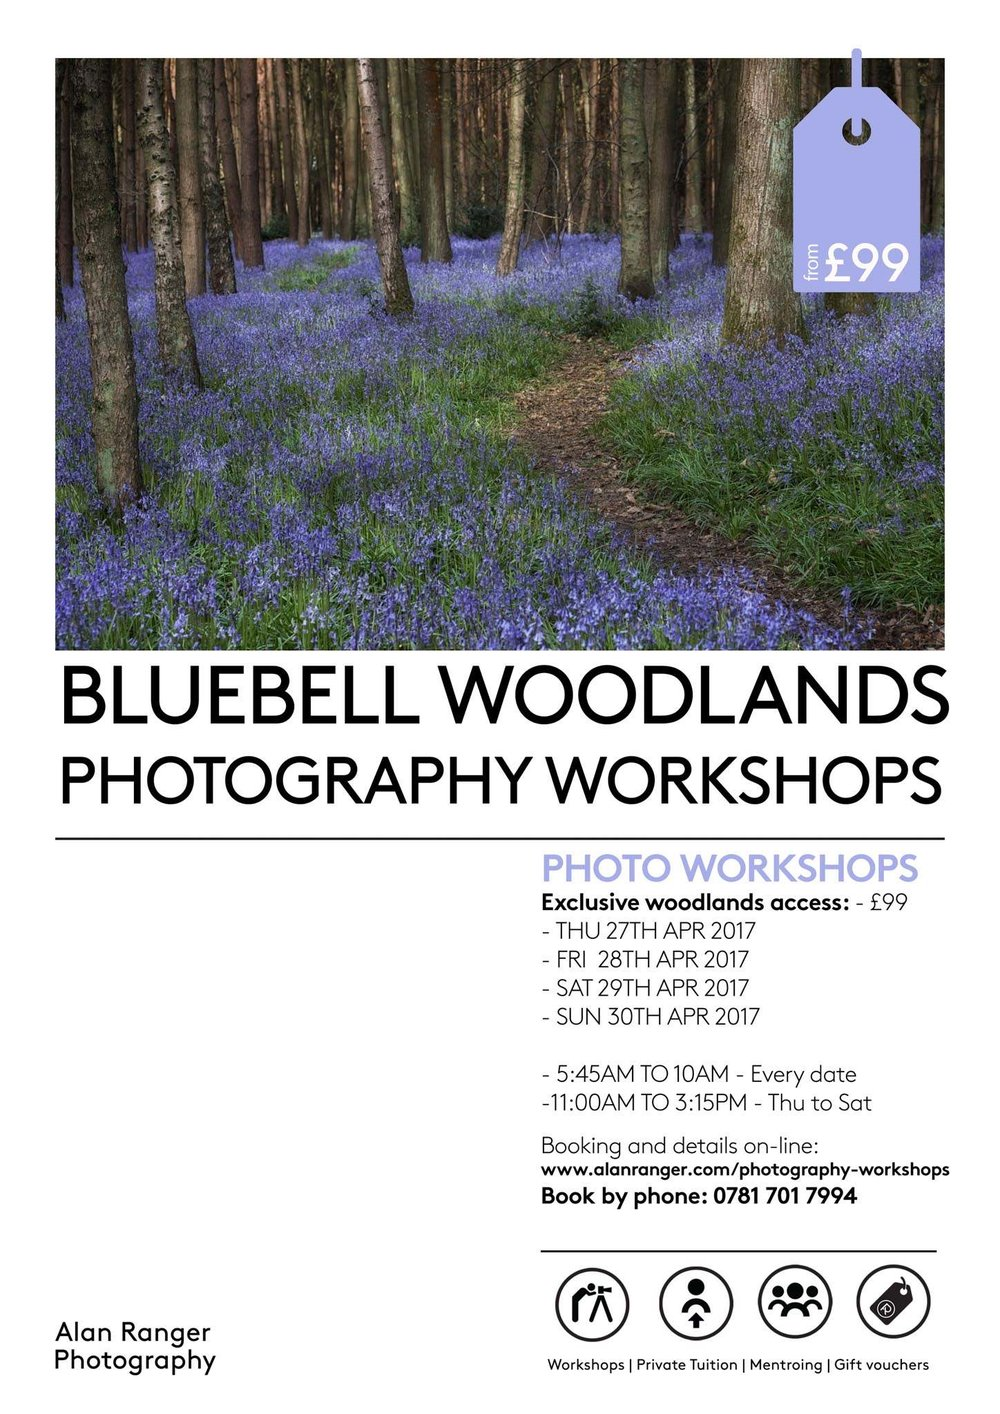 bluebell woodland photography workshops